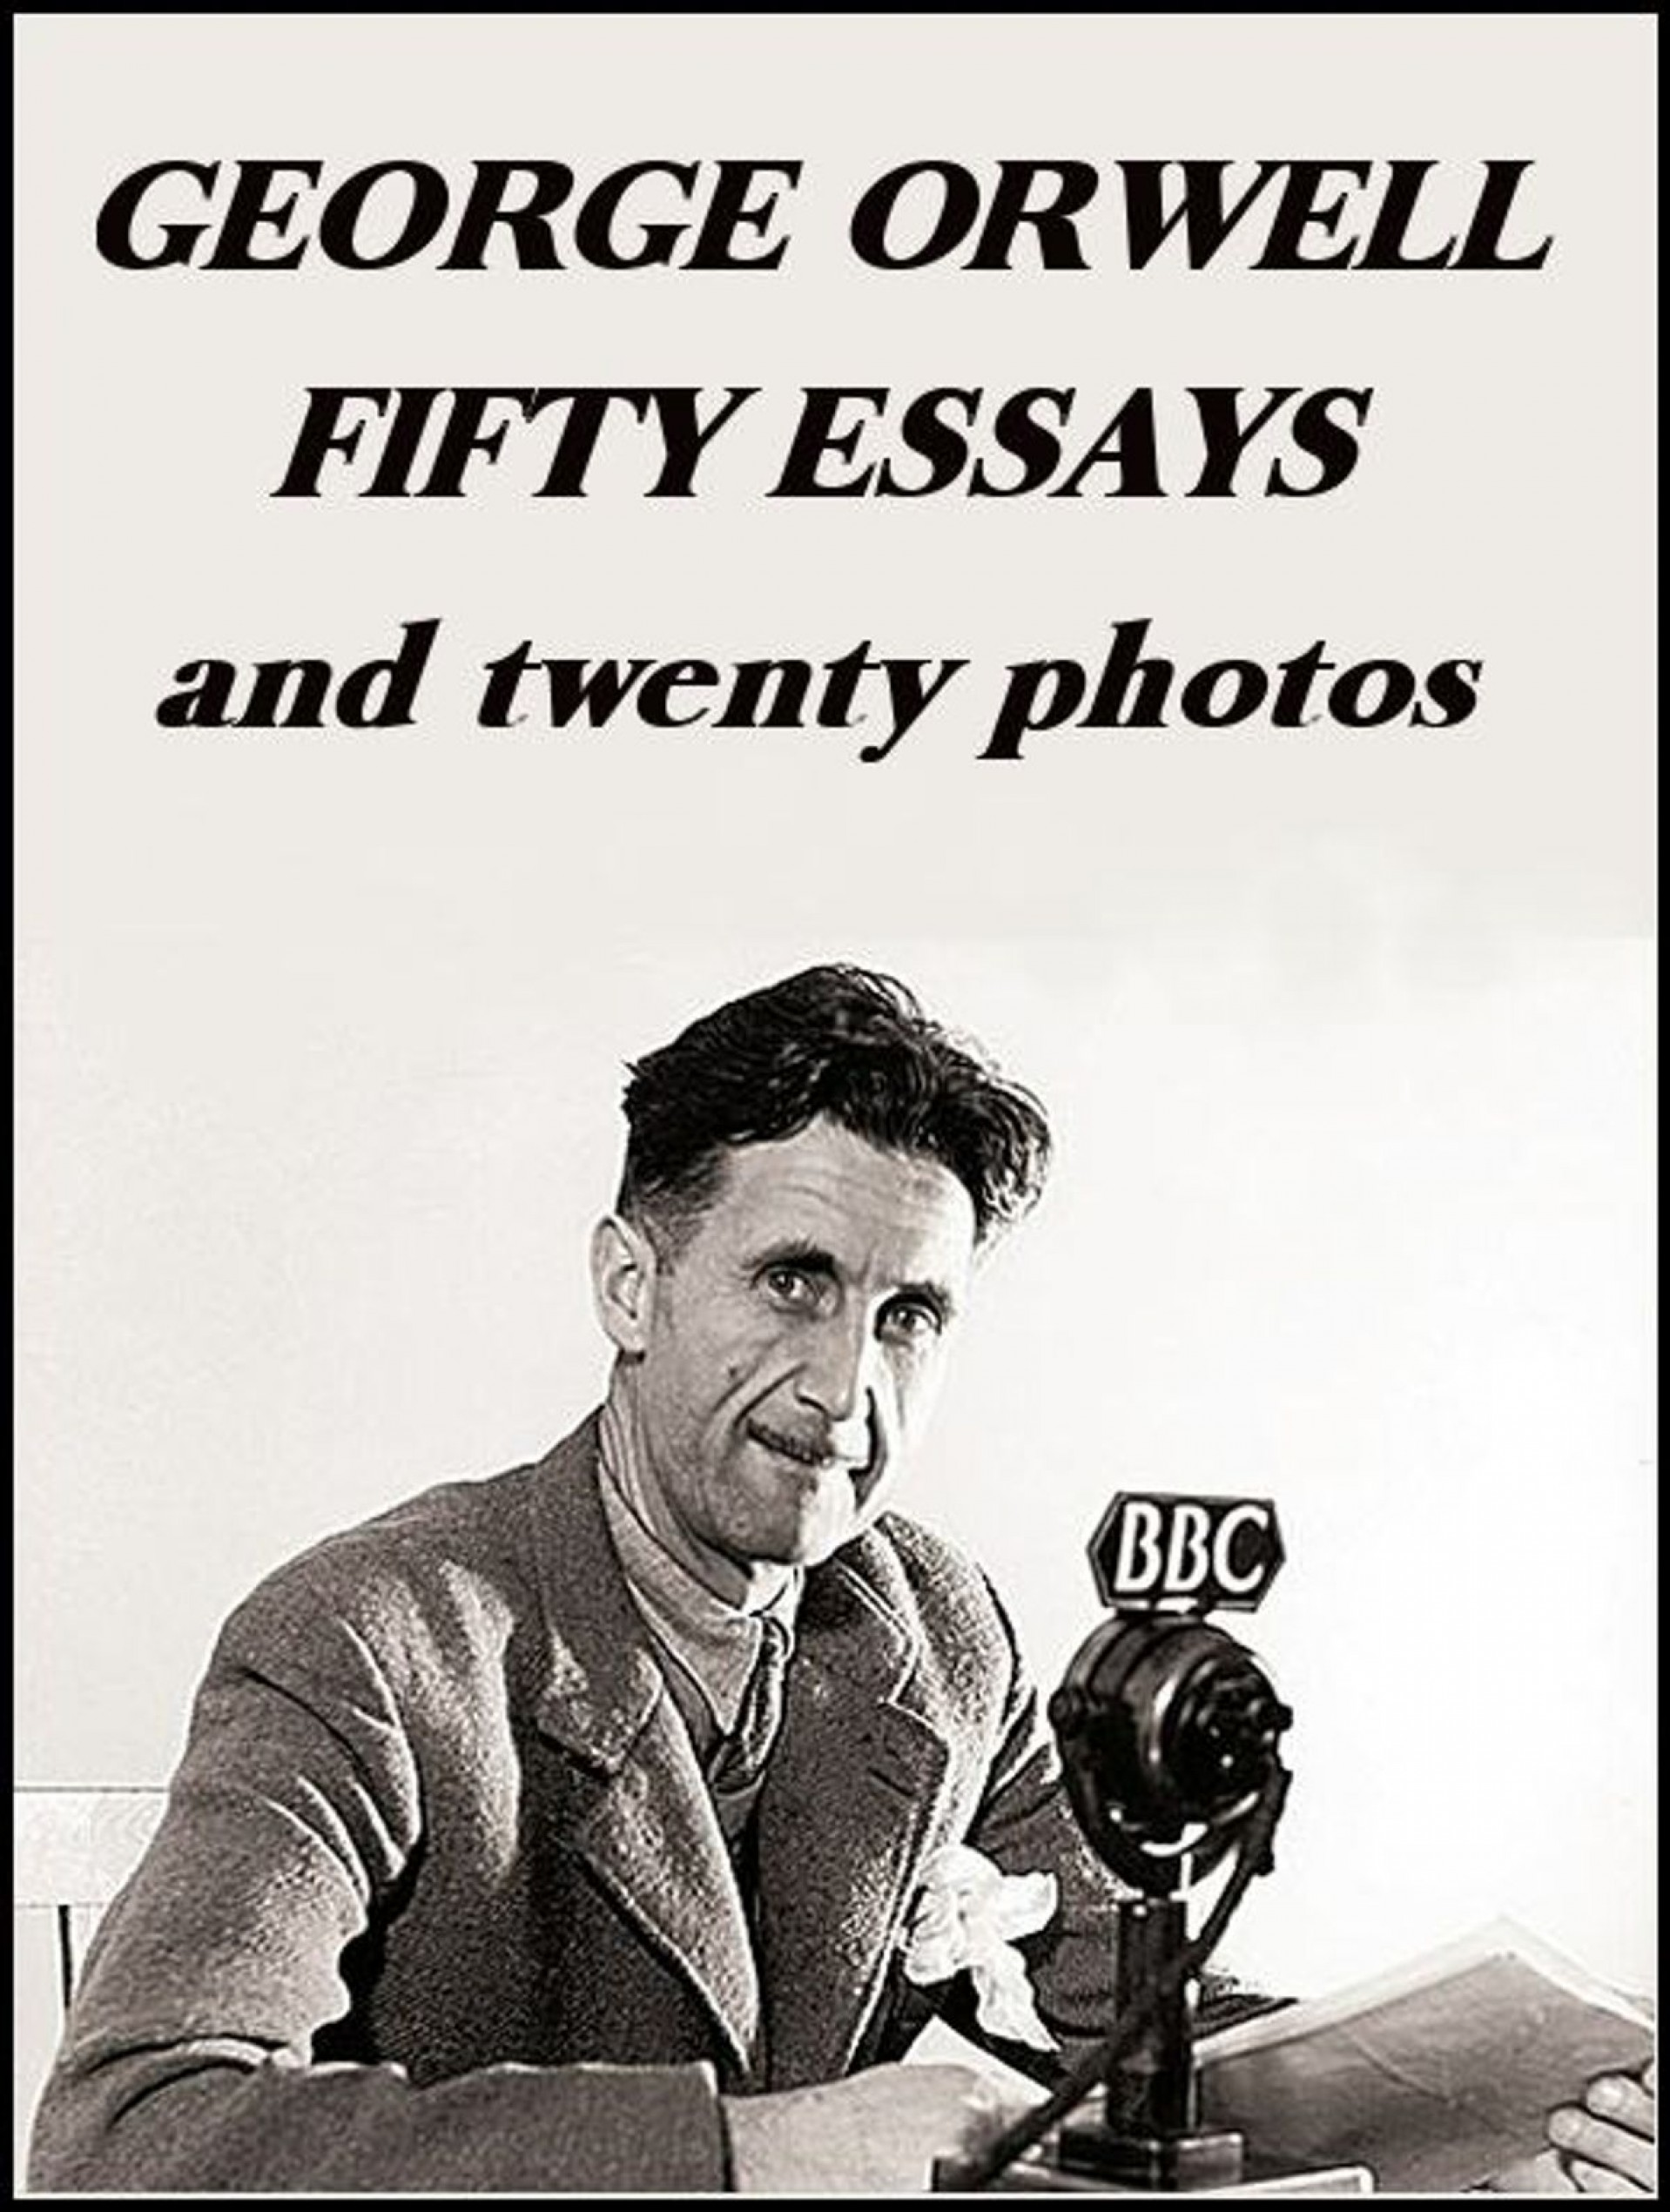 010 Essay Example George Orwell Fifty Frightening Essays 1984 Summary Collected Pdf On Writing 1920